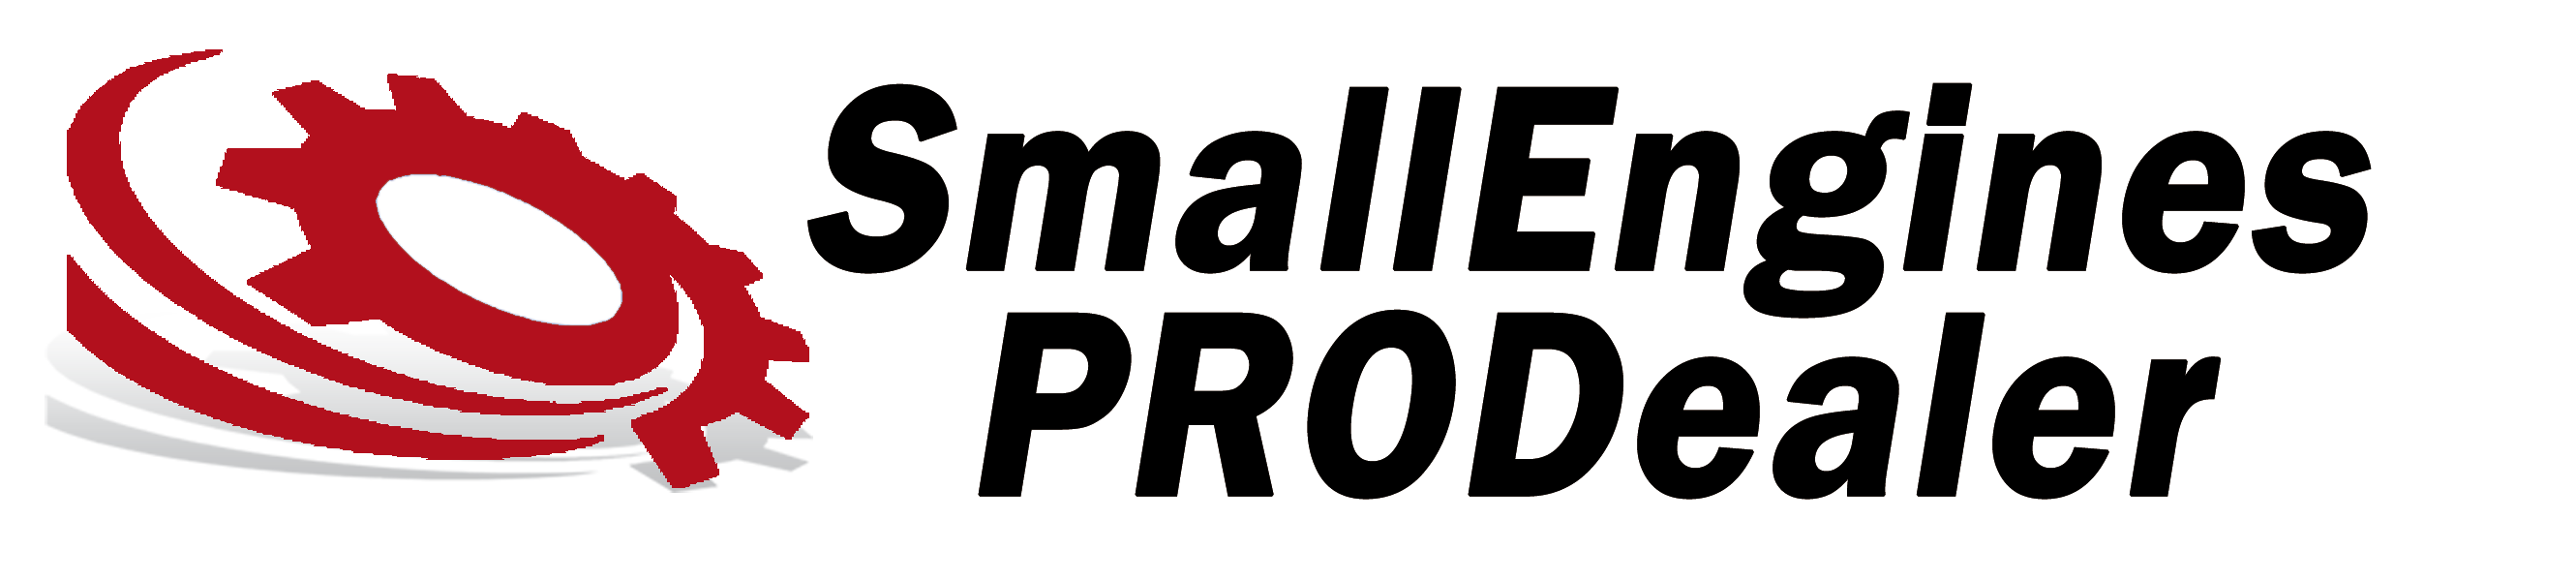 smallenginesprodealer